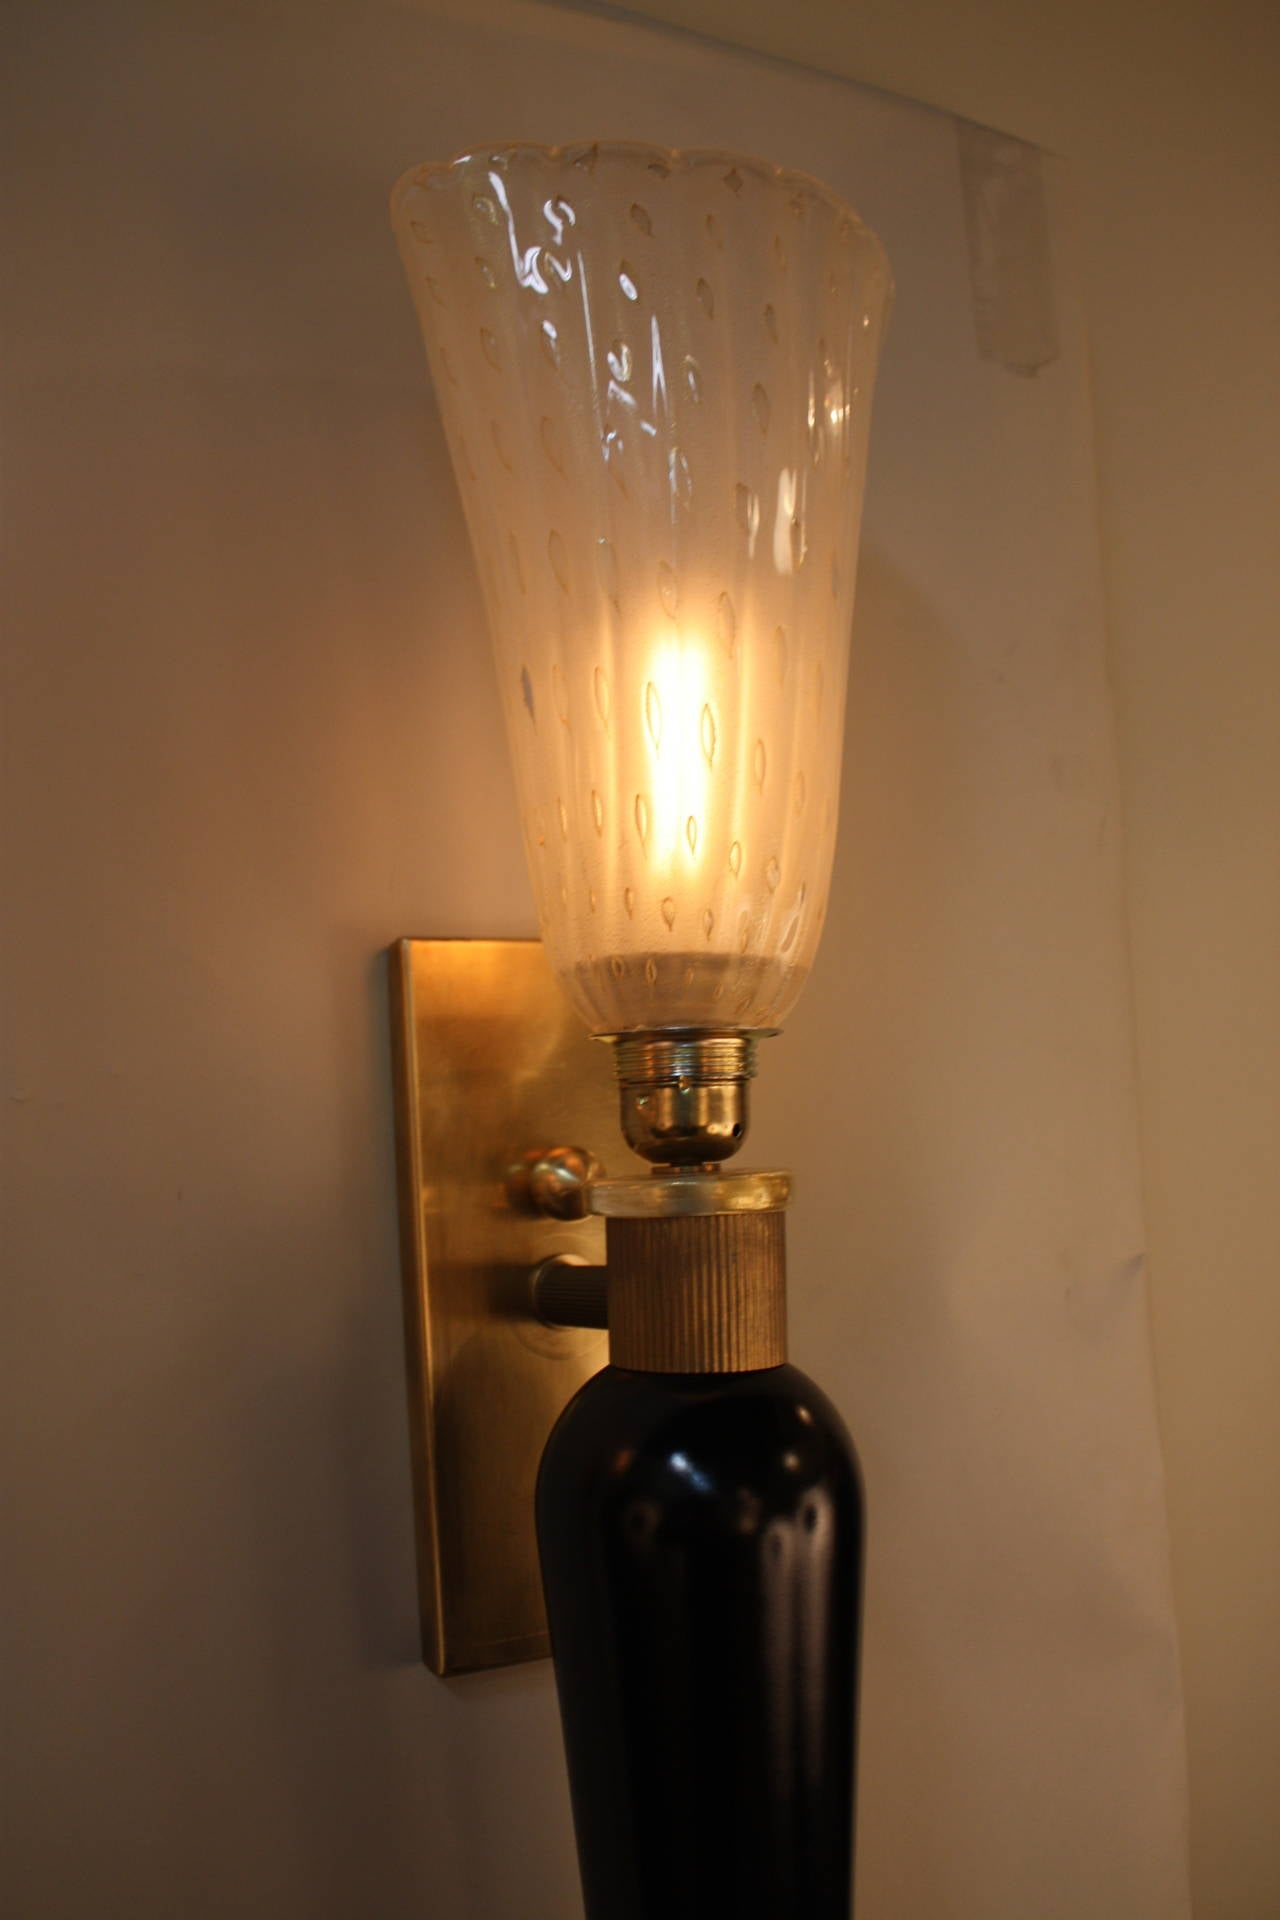 Wall Sconce No Wiring Electrical Diagram Sconces Murano Glass At 1stdibs Lighting Without Outlet To